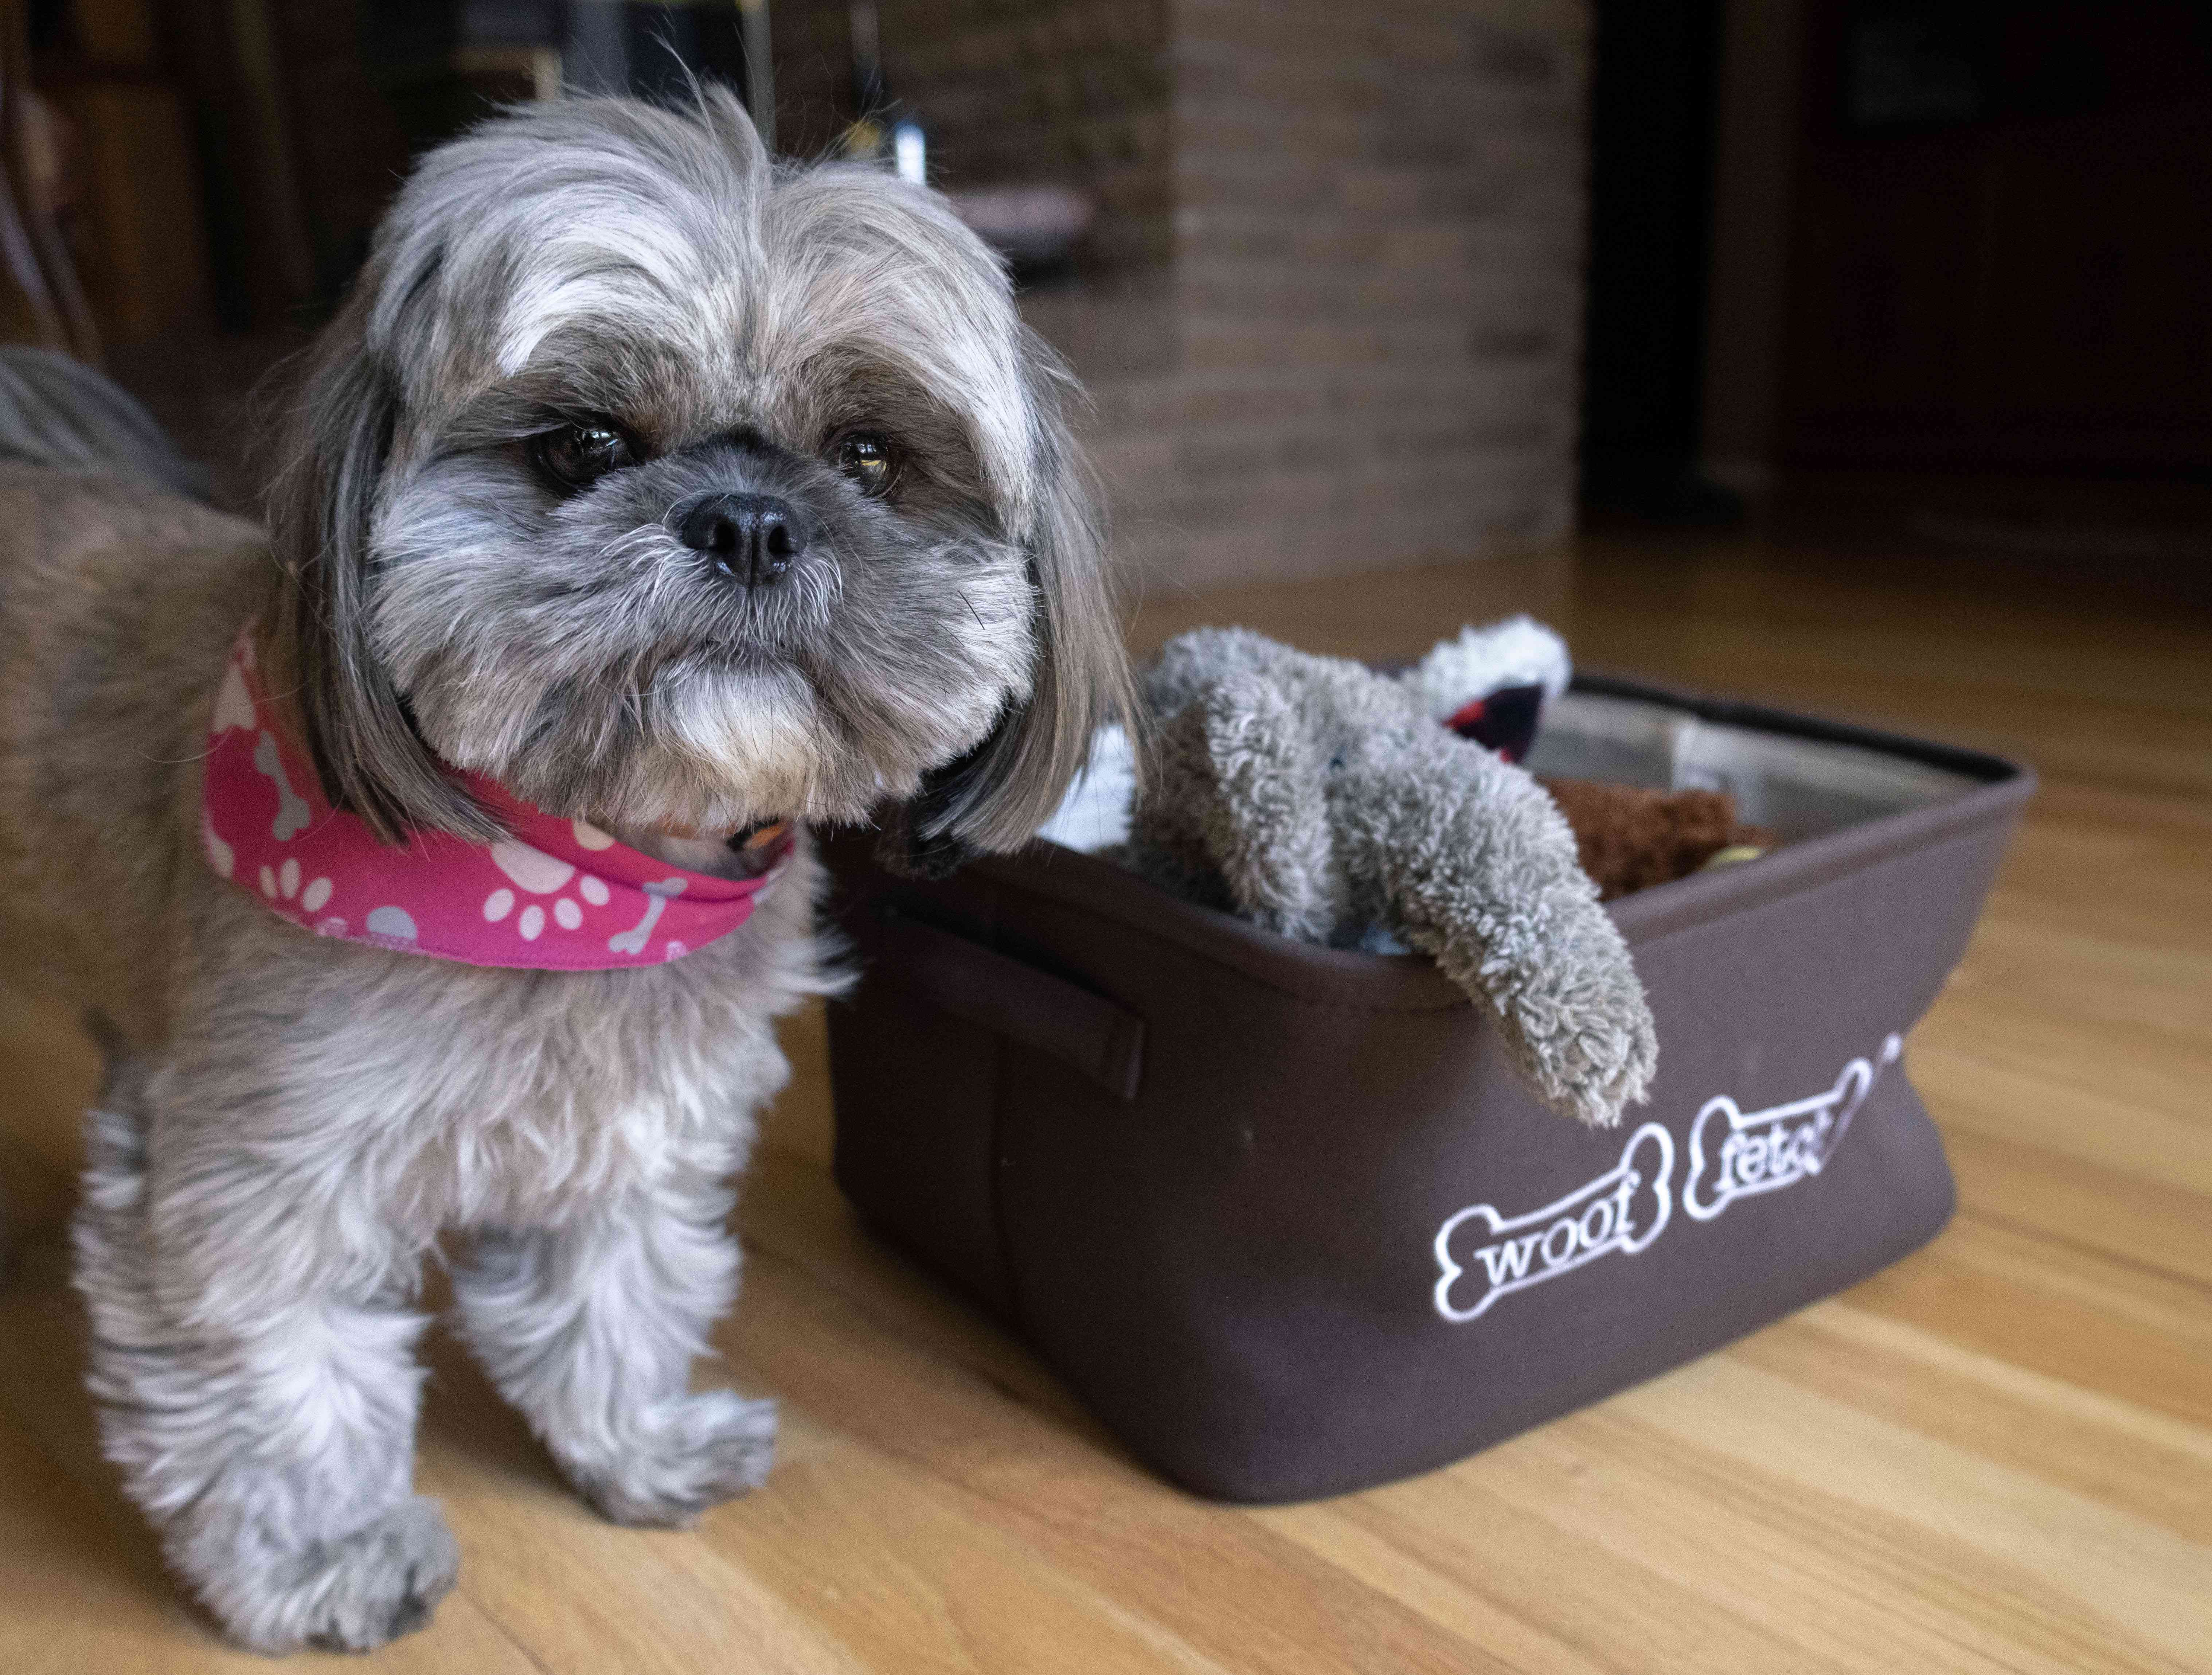 gray and white shih tzu-mix small dog stands next to fabric bucket of dog toys